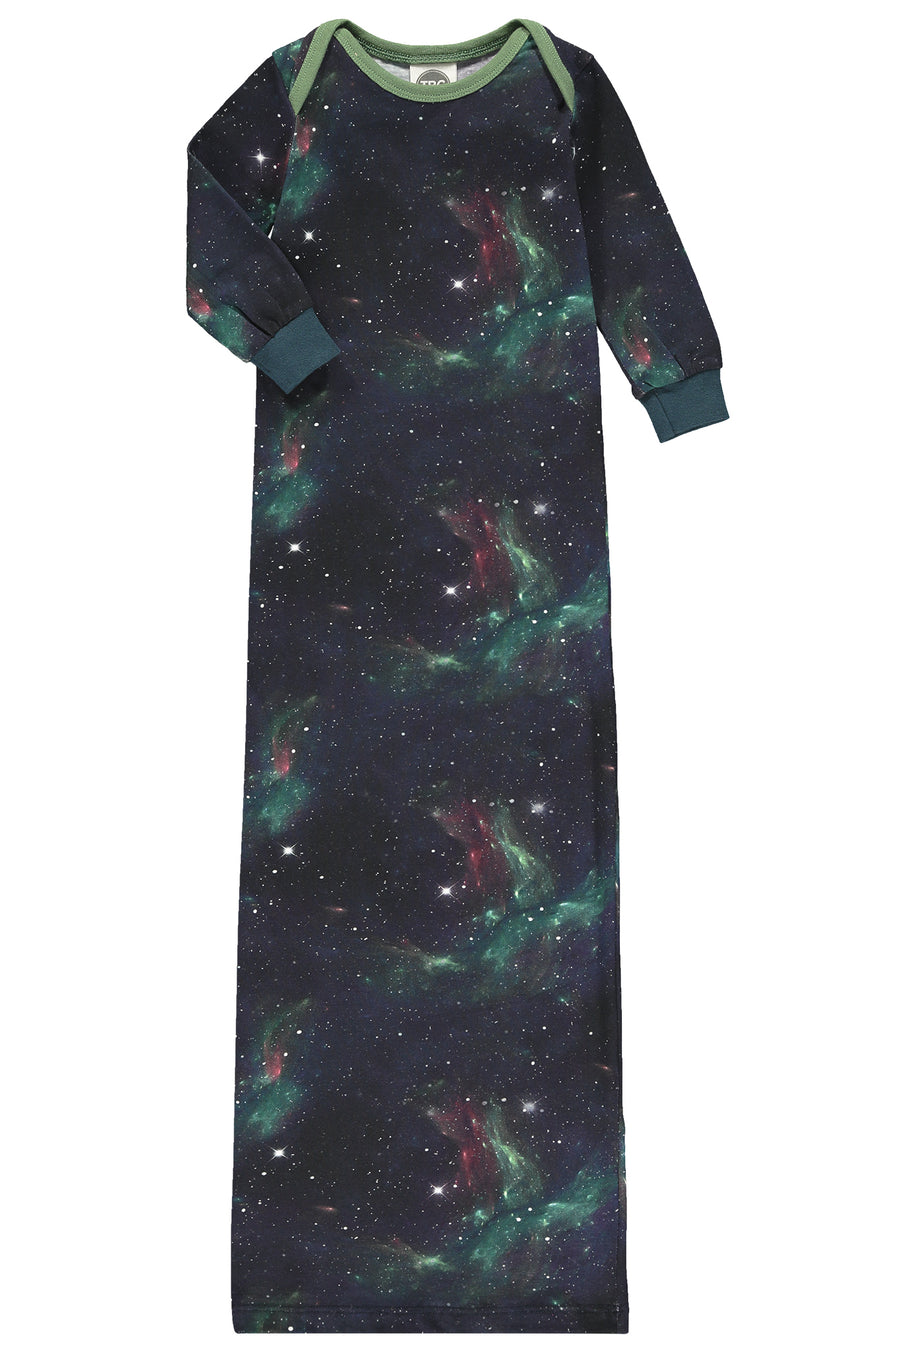 TIE UP BABY GOWN- GALAXY